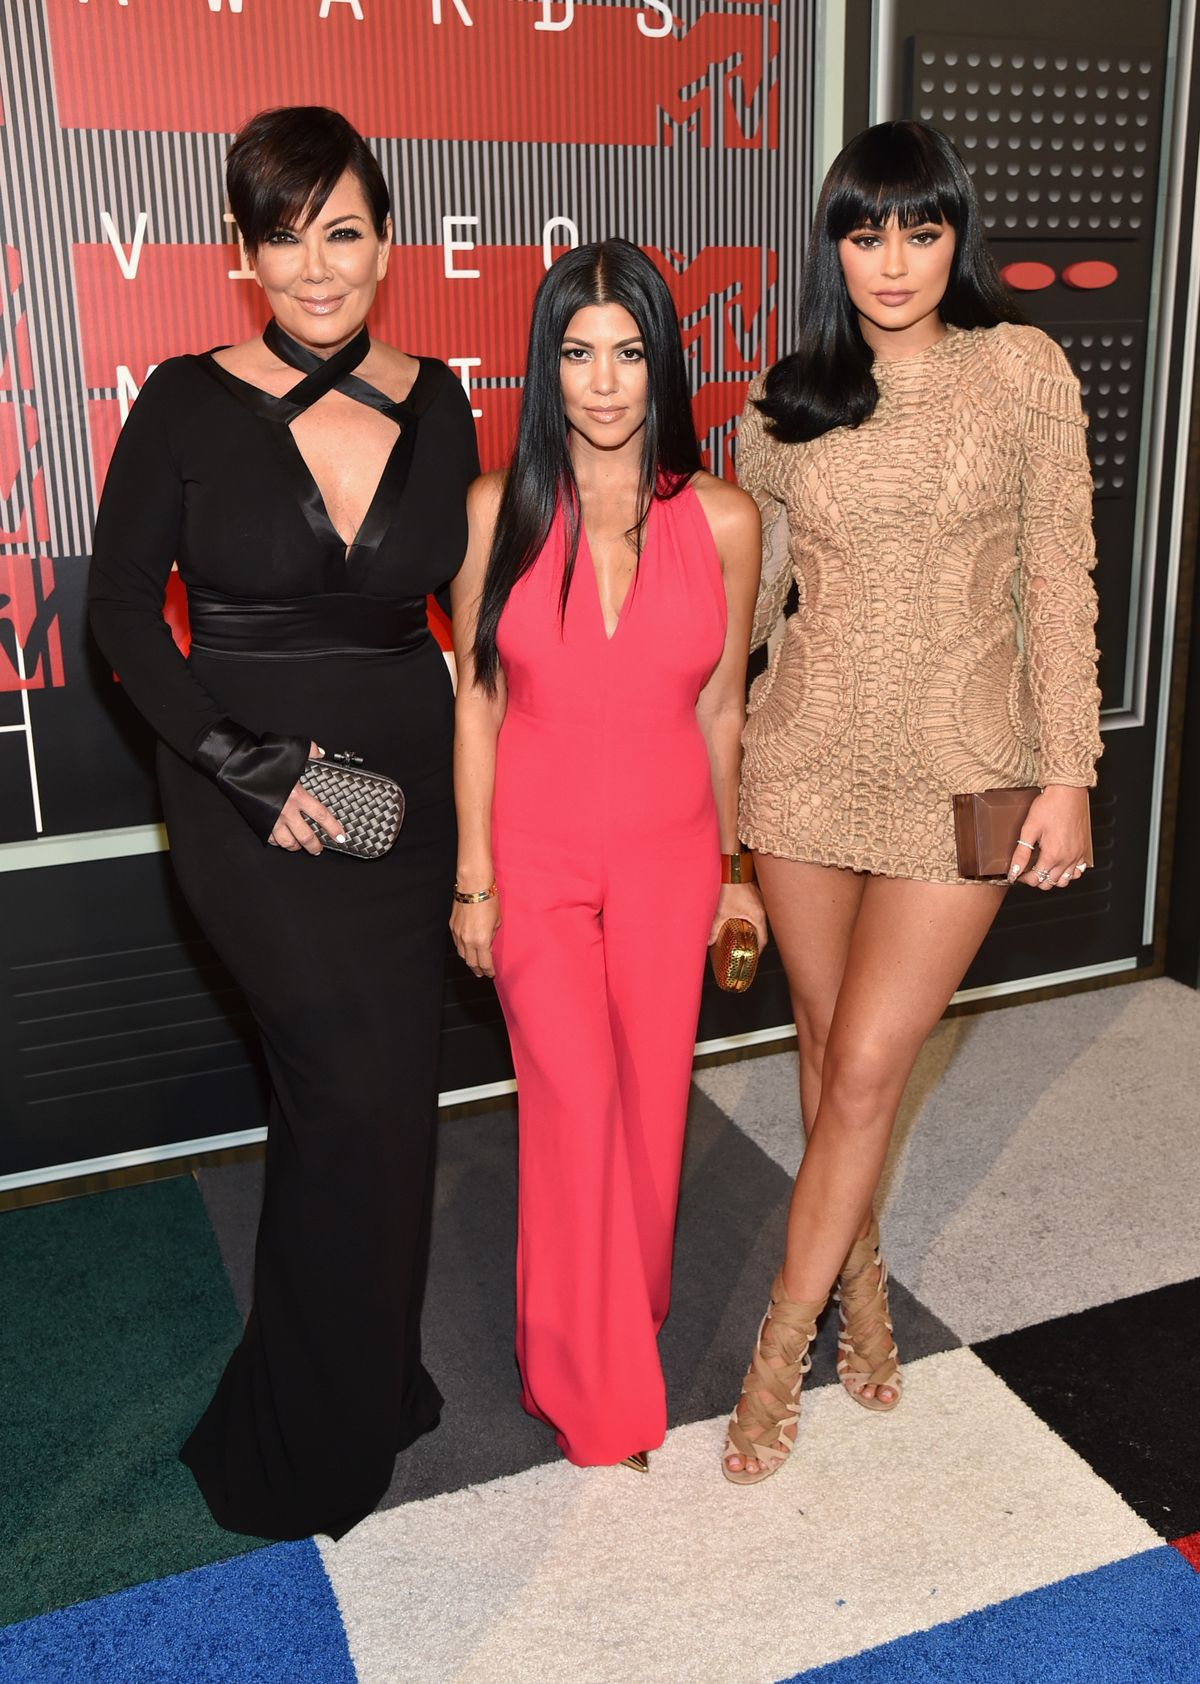 LOS ANGELES, CA - AUGUST 30:  (L-R) TV personalities Kris Jenner, Kourtney Kardashian and Kylie Jenner attend the 2015 MTV Video Music Awards at Microsoft Theater on August 30, 2015 in Los Angeles, California.  (Photo by John Shearer/Getty Images)